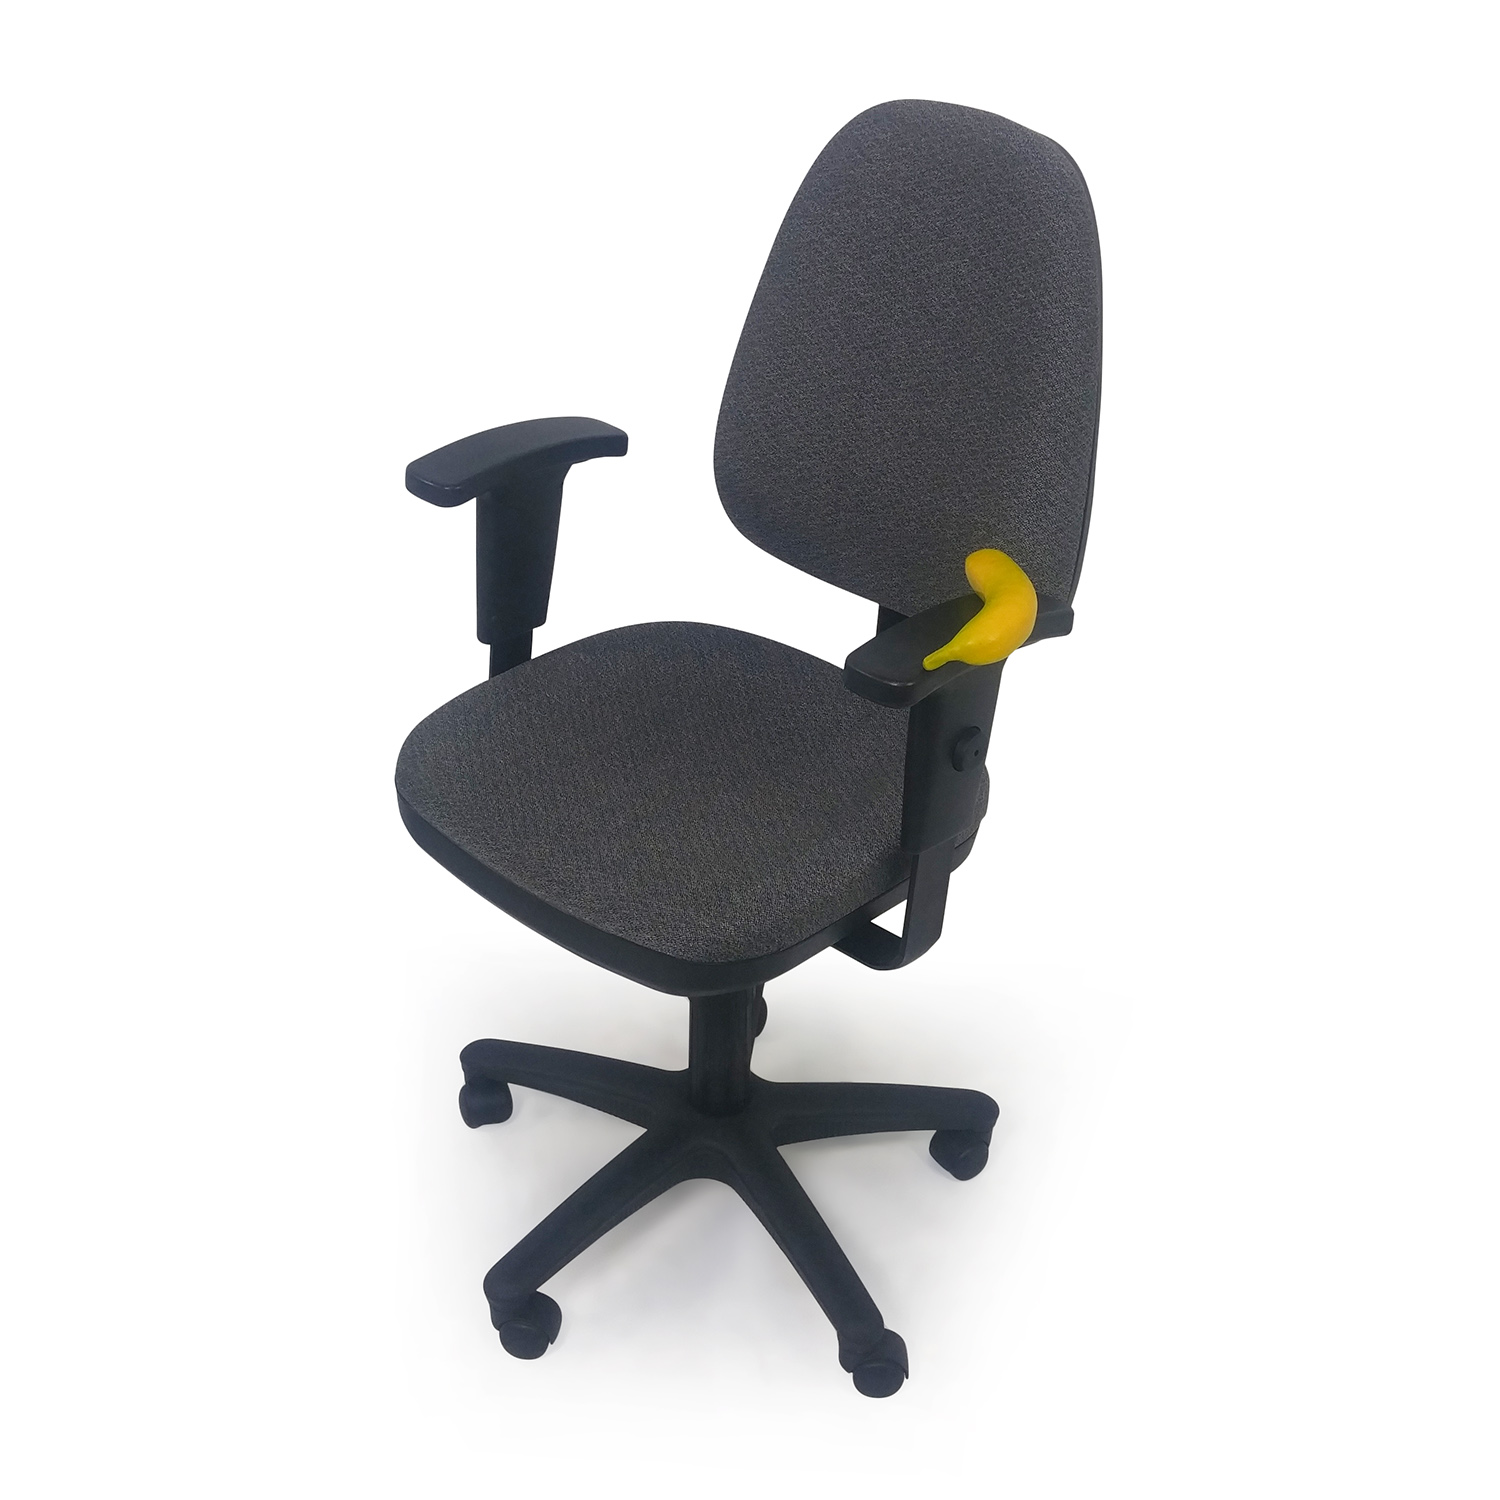 ergo chairs for office upright posture chair 88 off ergonomic